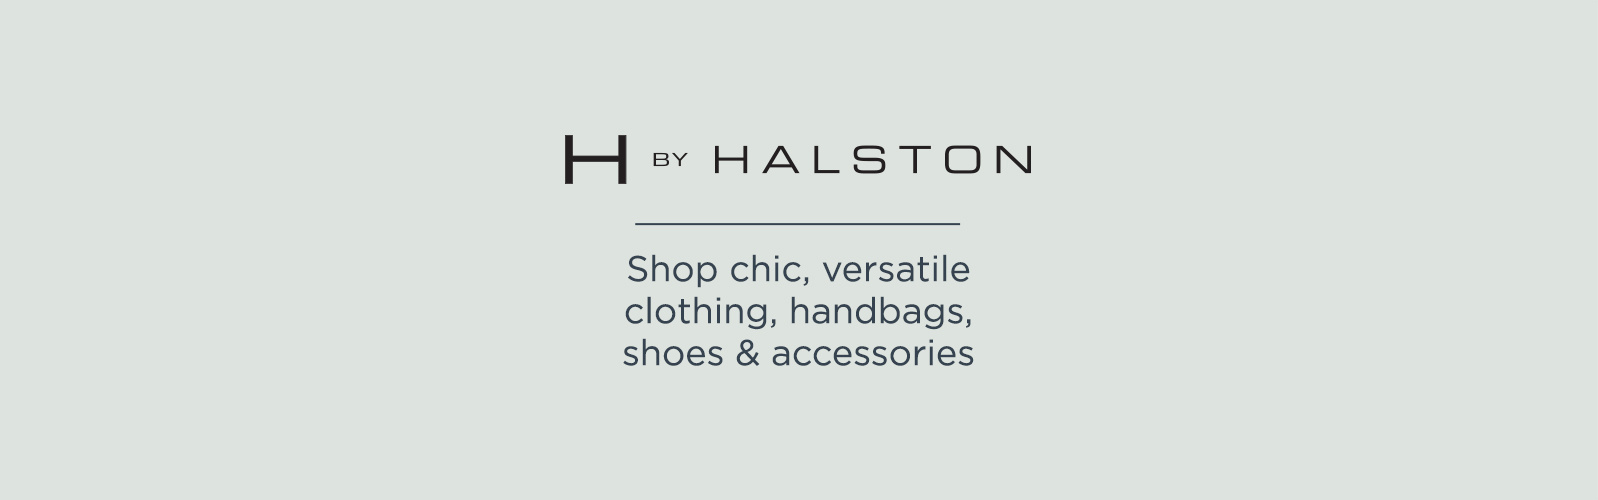 H by Halston - Shop chic, versatile clothing, handbags, shoes & accessories